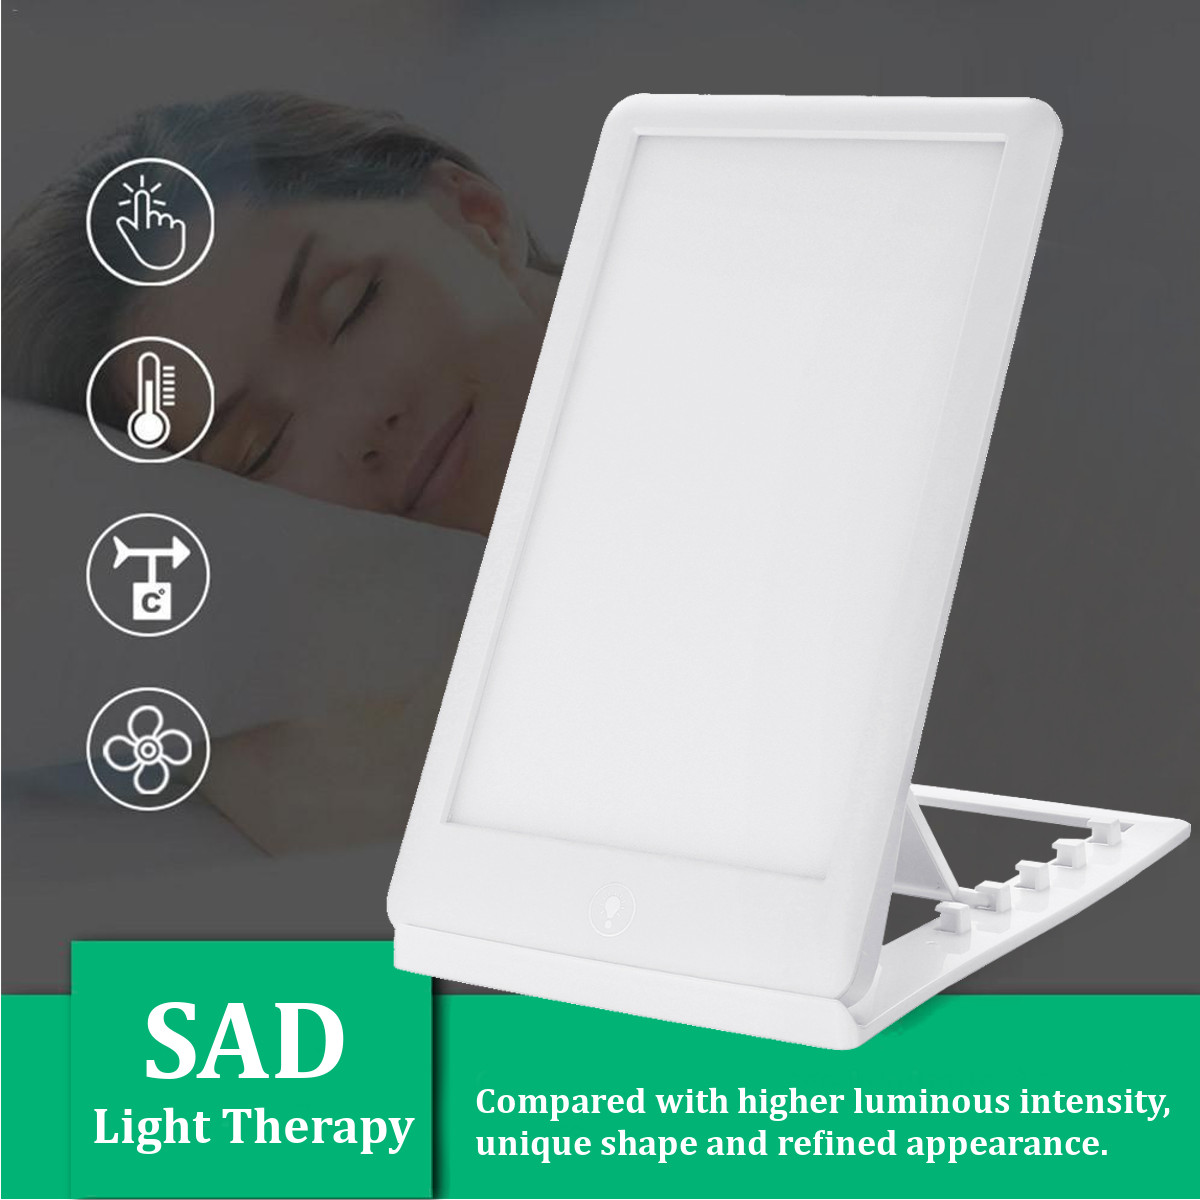 3 Modes 11000 Lux Sunlight SAD Light Therapy Improve Mood Healing Wellness Lamp Natural Daylight SAD Therapy Lamp Lighting New